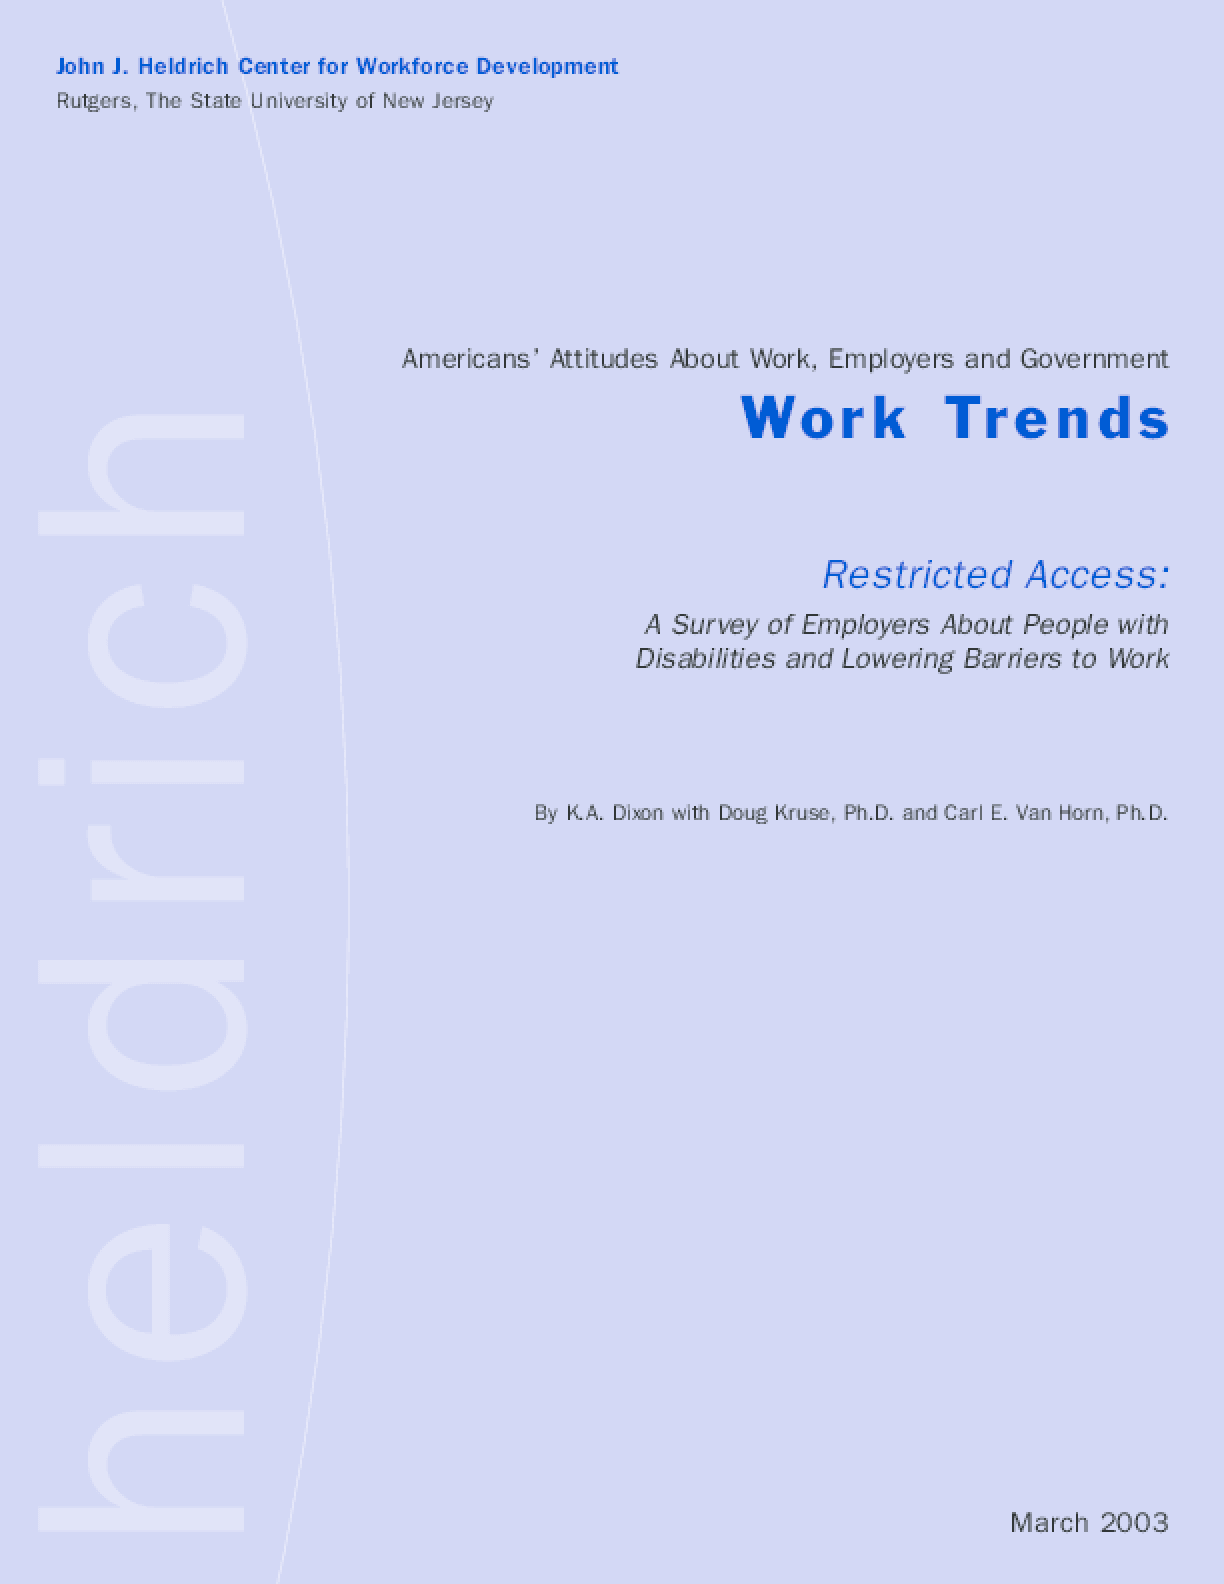 Restricted Access: Work Trends Survey of Employers About People with Disabilities